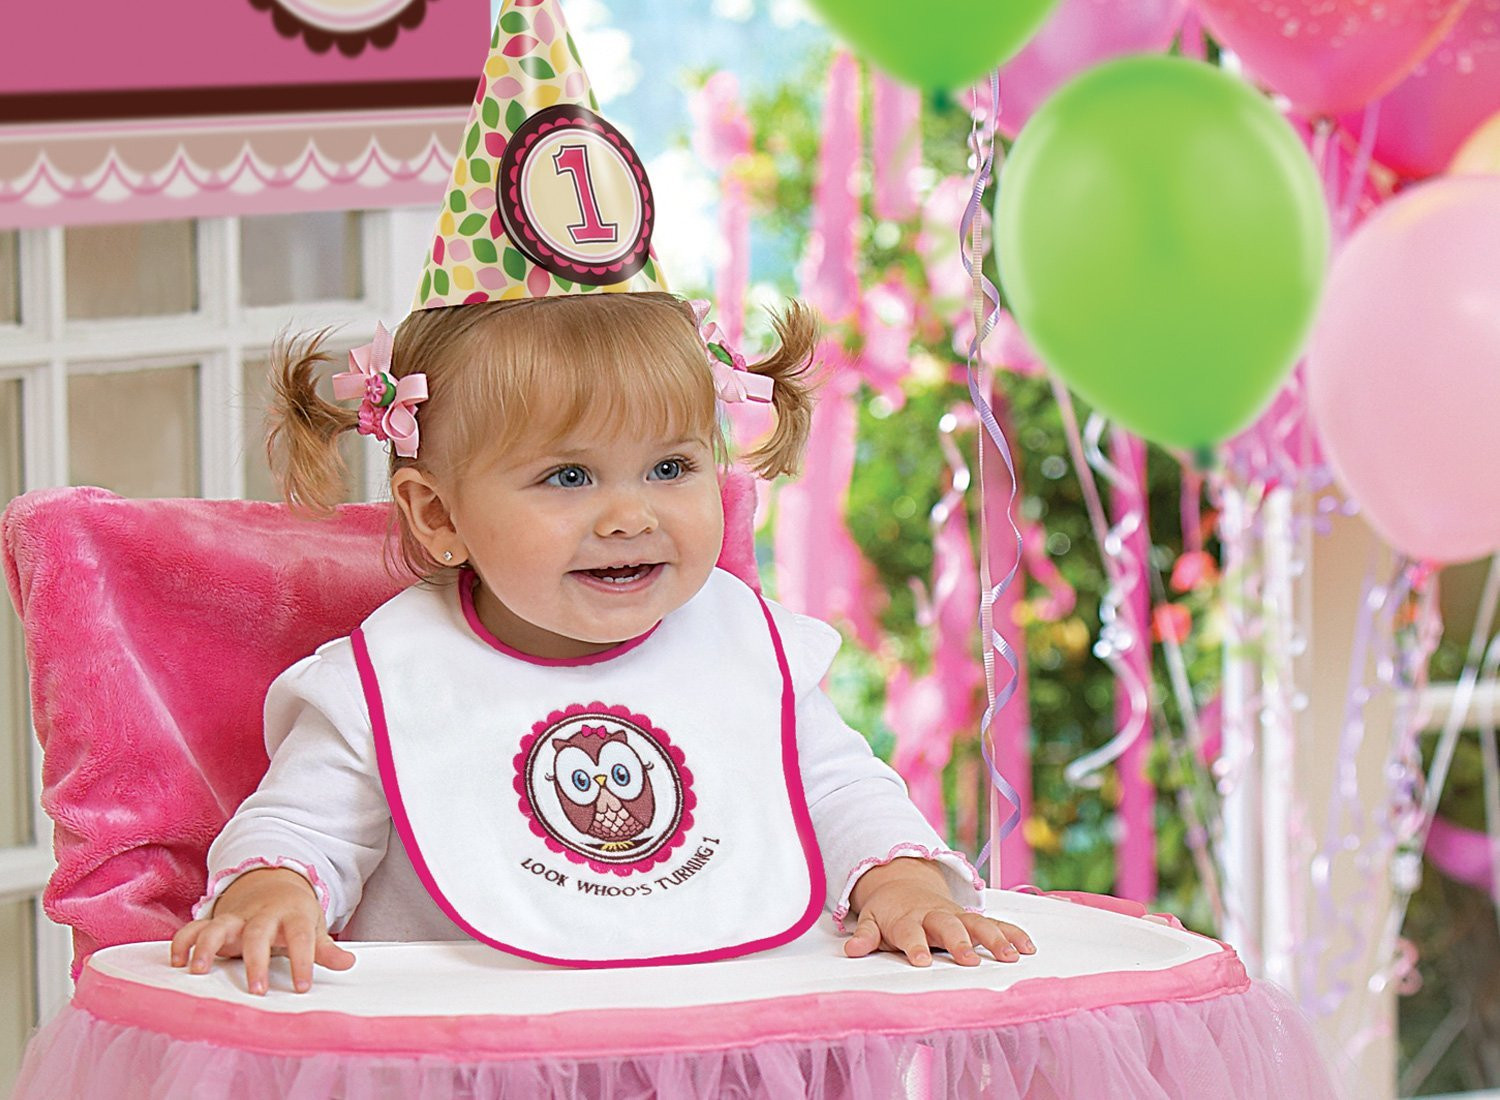 Best ideas about Baby First Birthday Decorations . Save or Pin 22 Fun Ideas For Your Baby Girl s First Birthday Shoot Now.